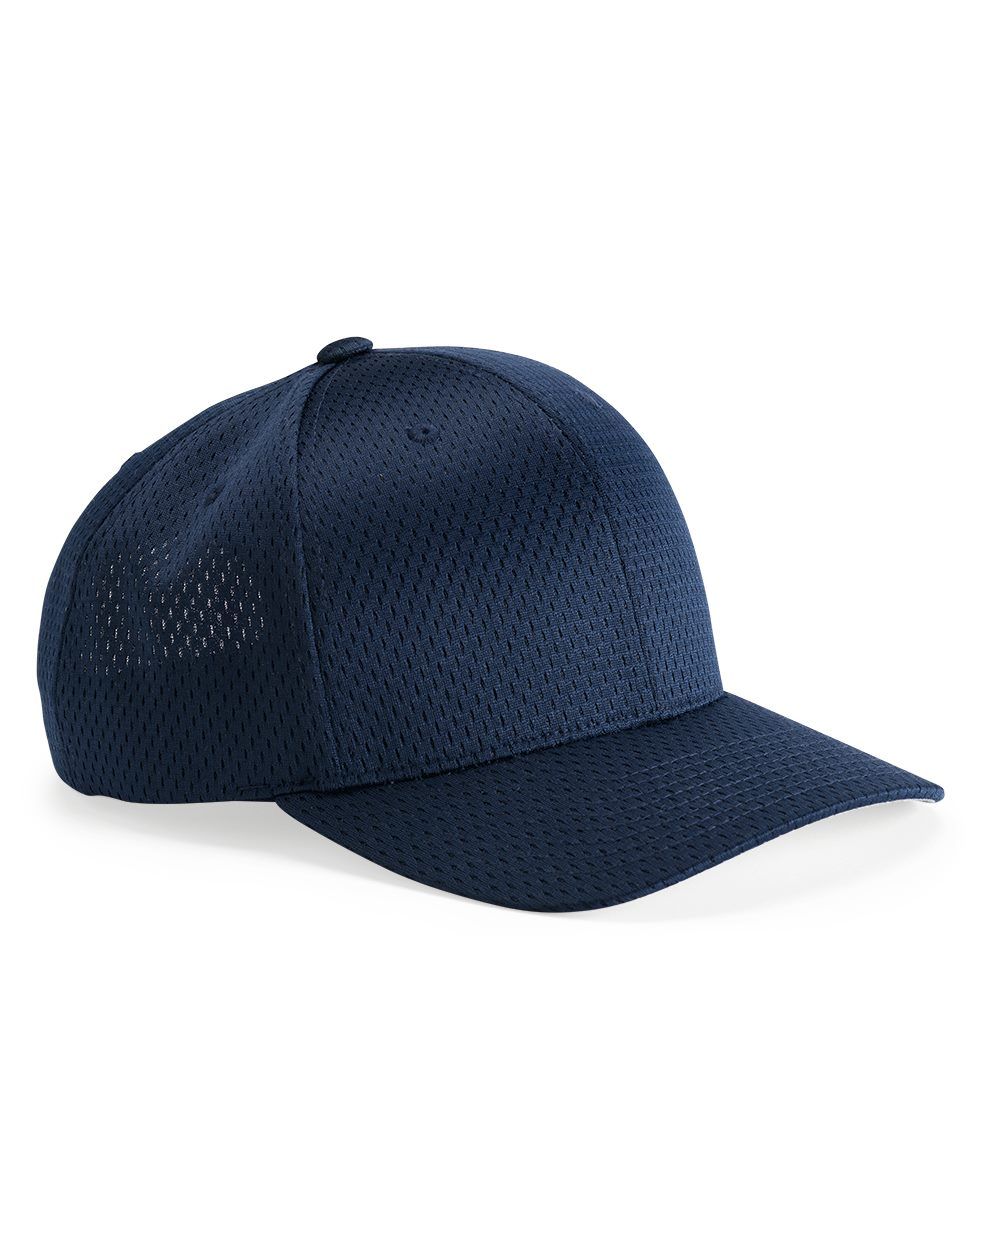 Yupoong 6008 - Athletic Pro Mesh Cap with Velcro Closure